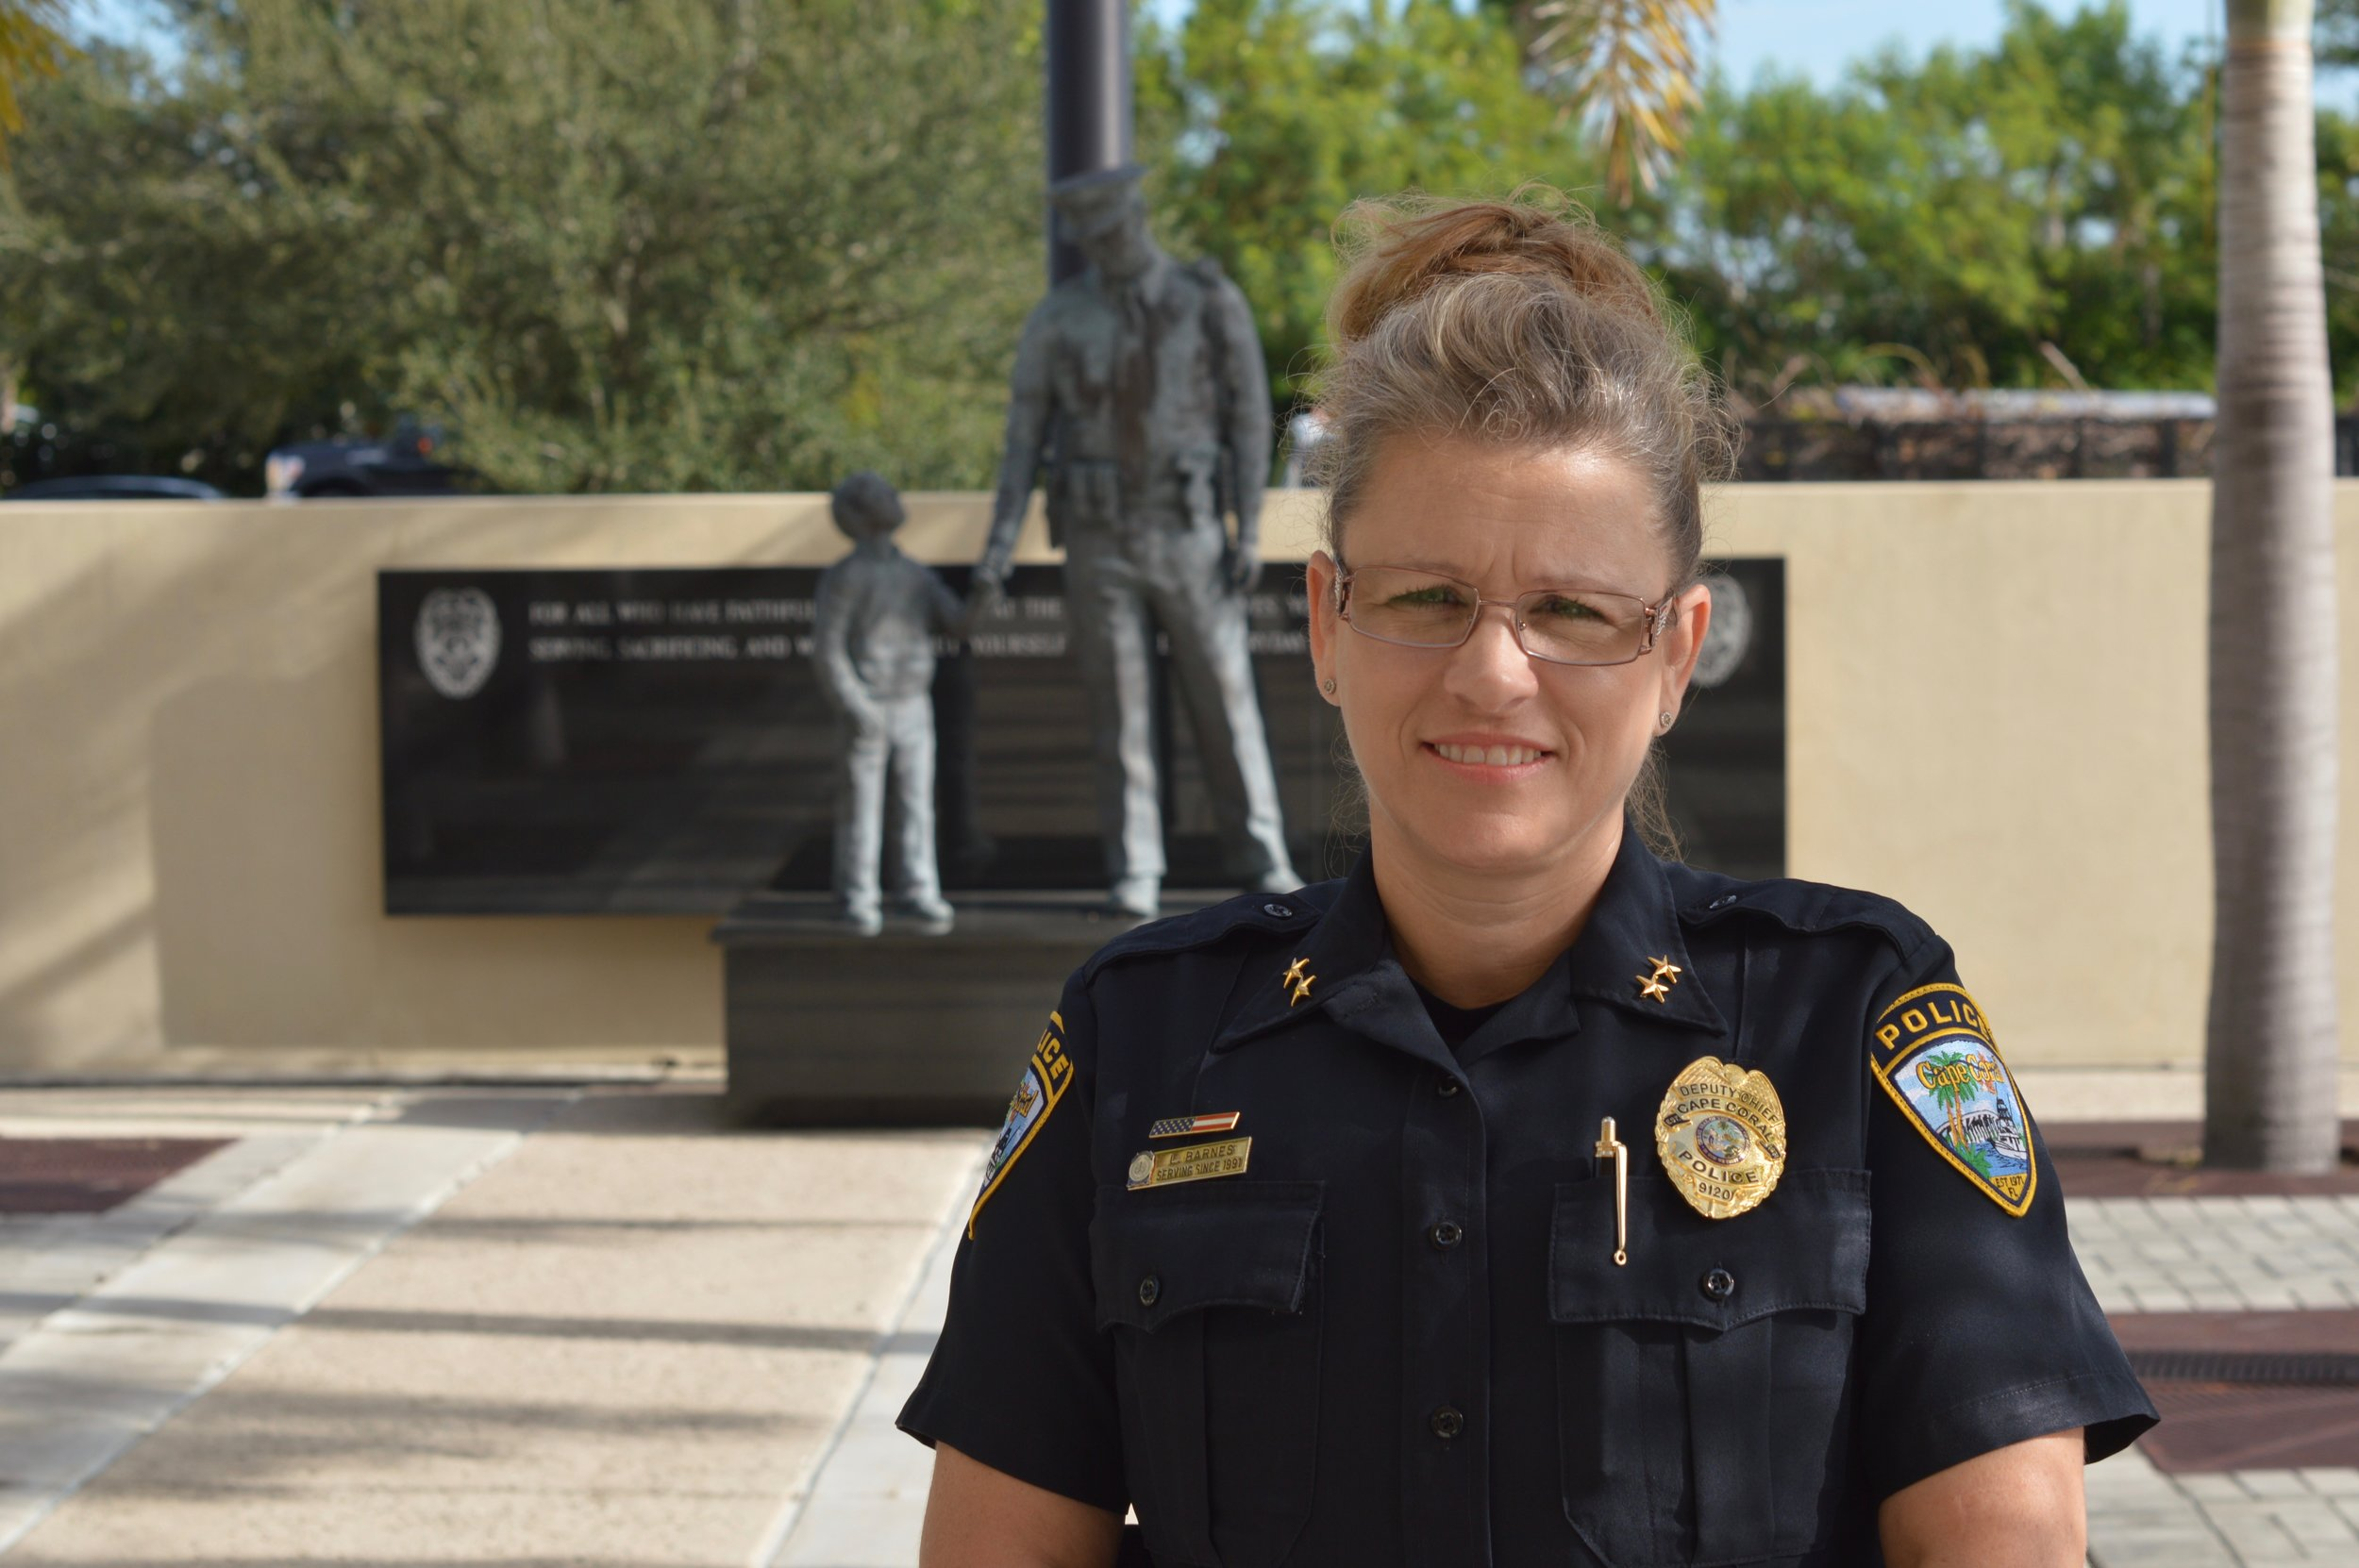 PHOTO: Deputy Chief Lisa Barnes. (Photo Courtesy of Cape Coral Police Department)